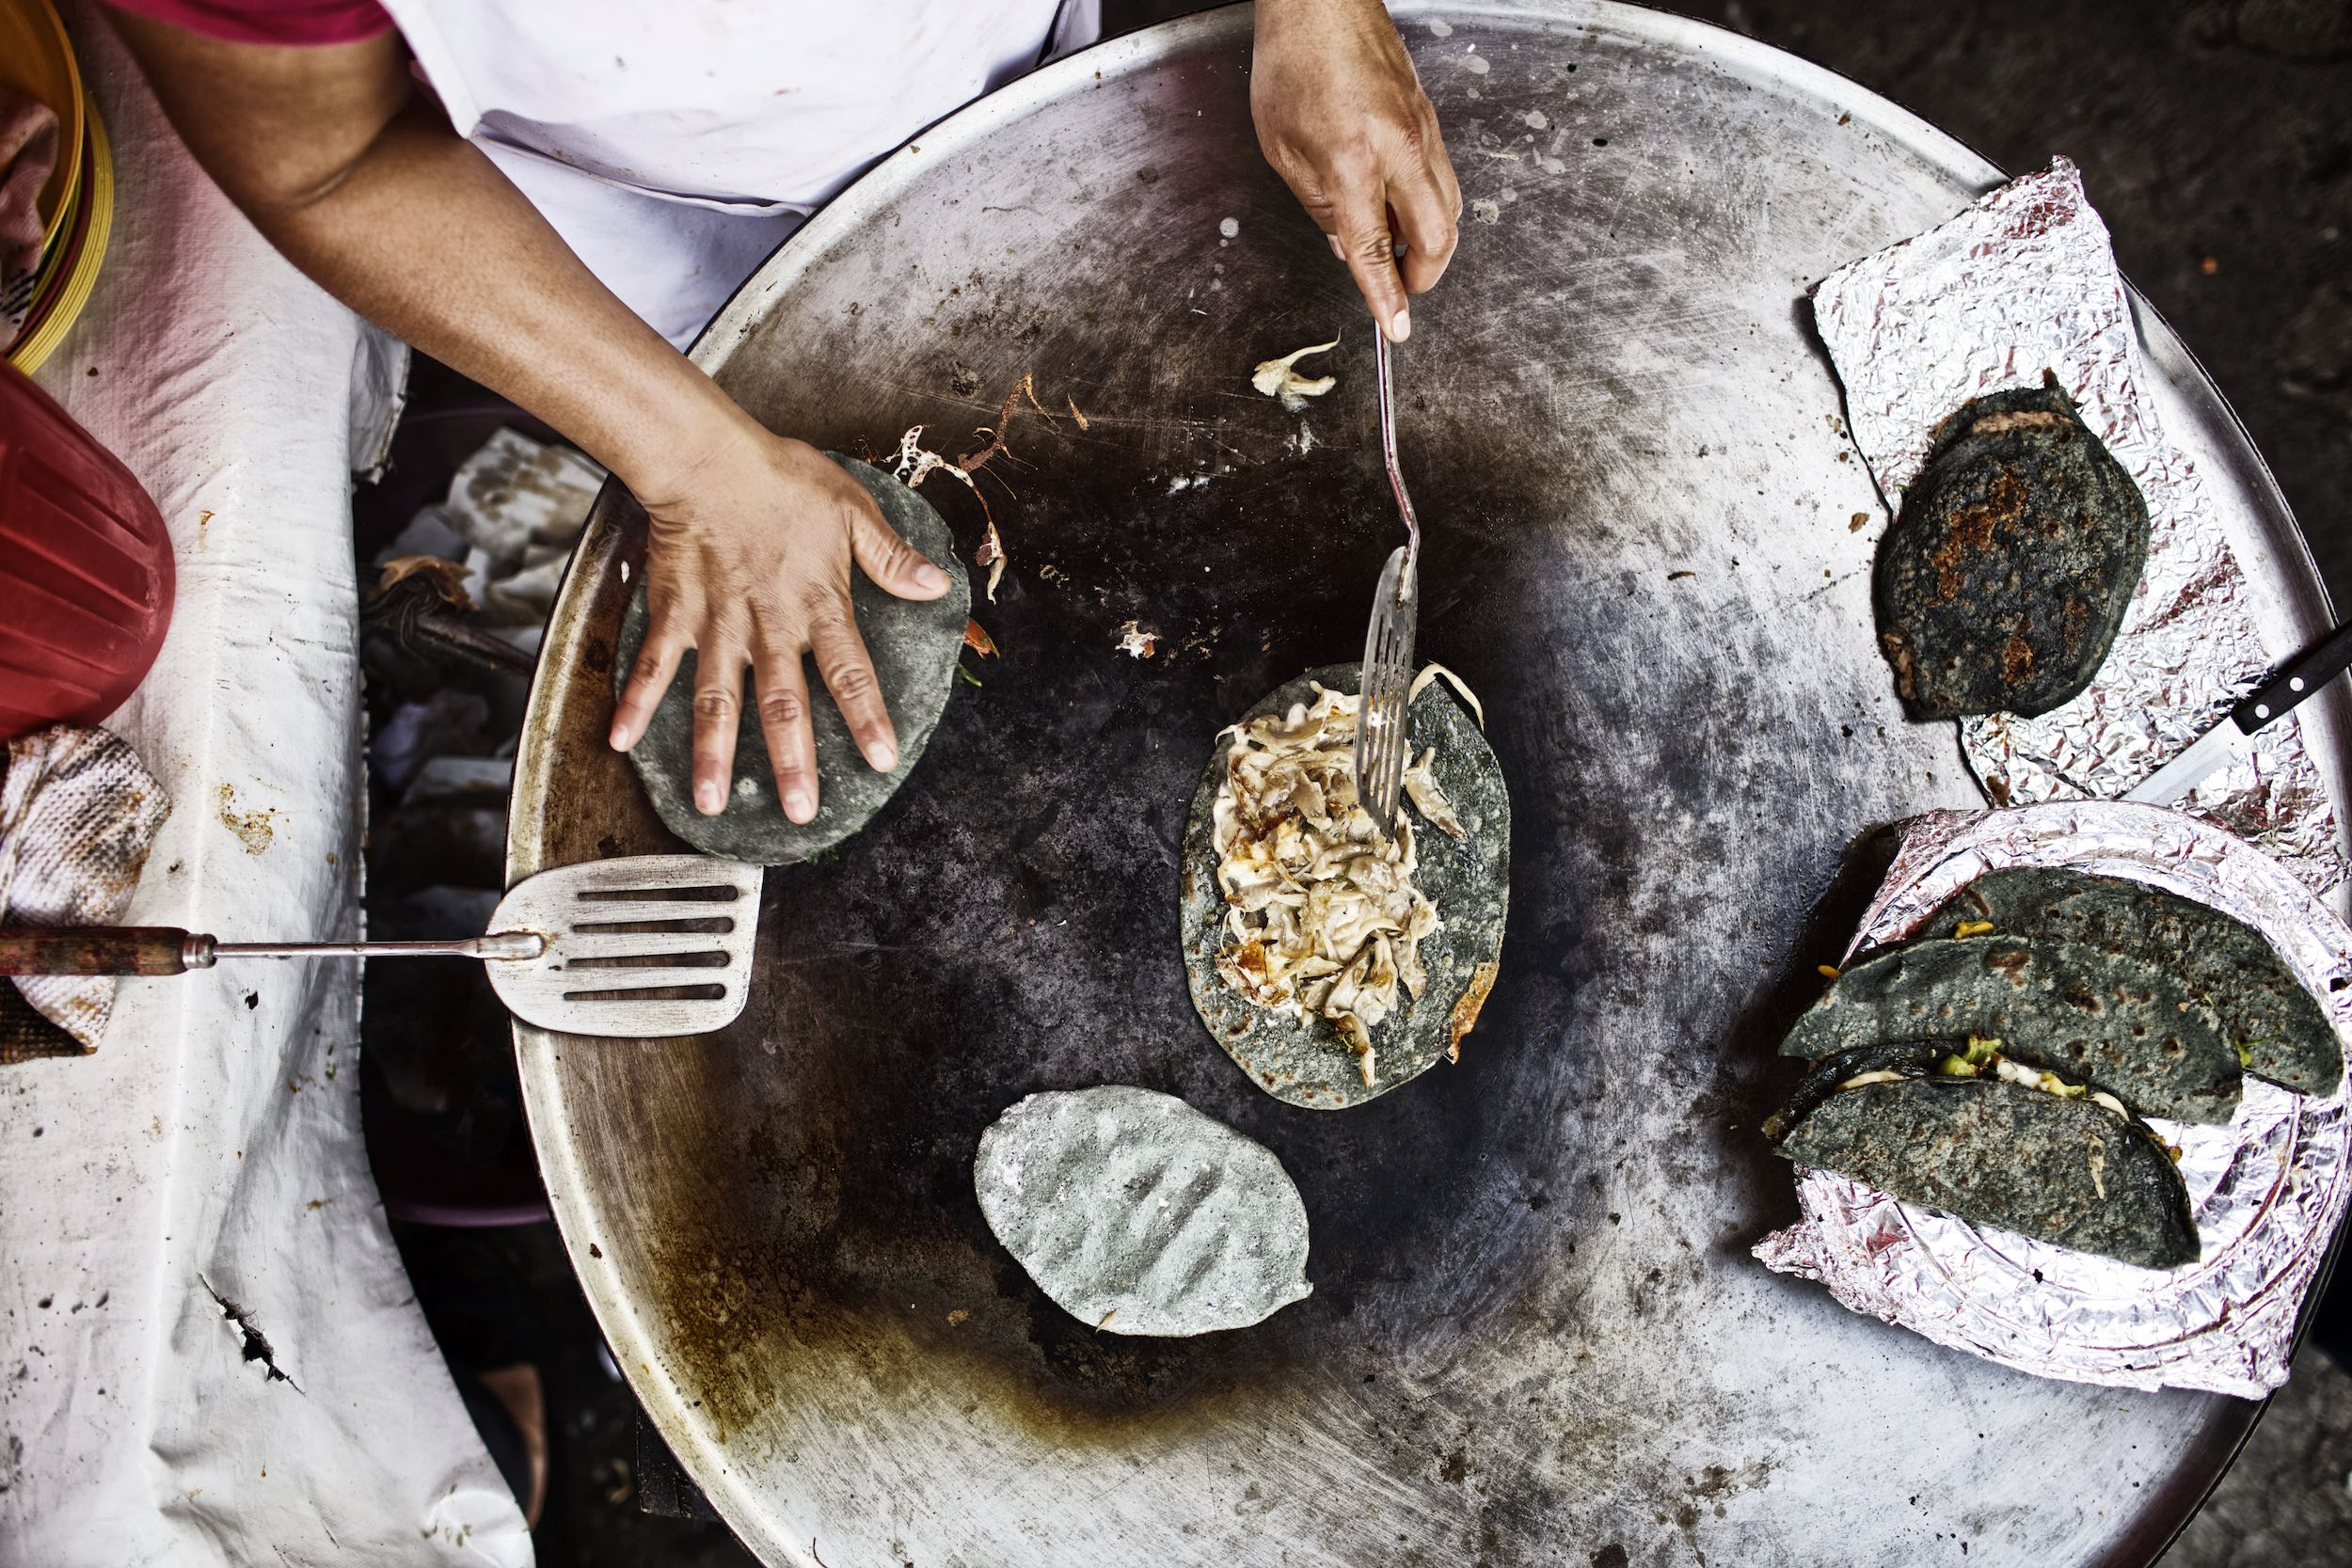 Jody Horton Photography - Tacos being prepared on a plancha.